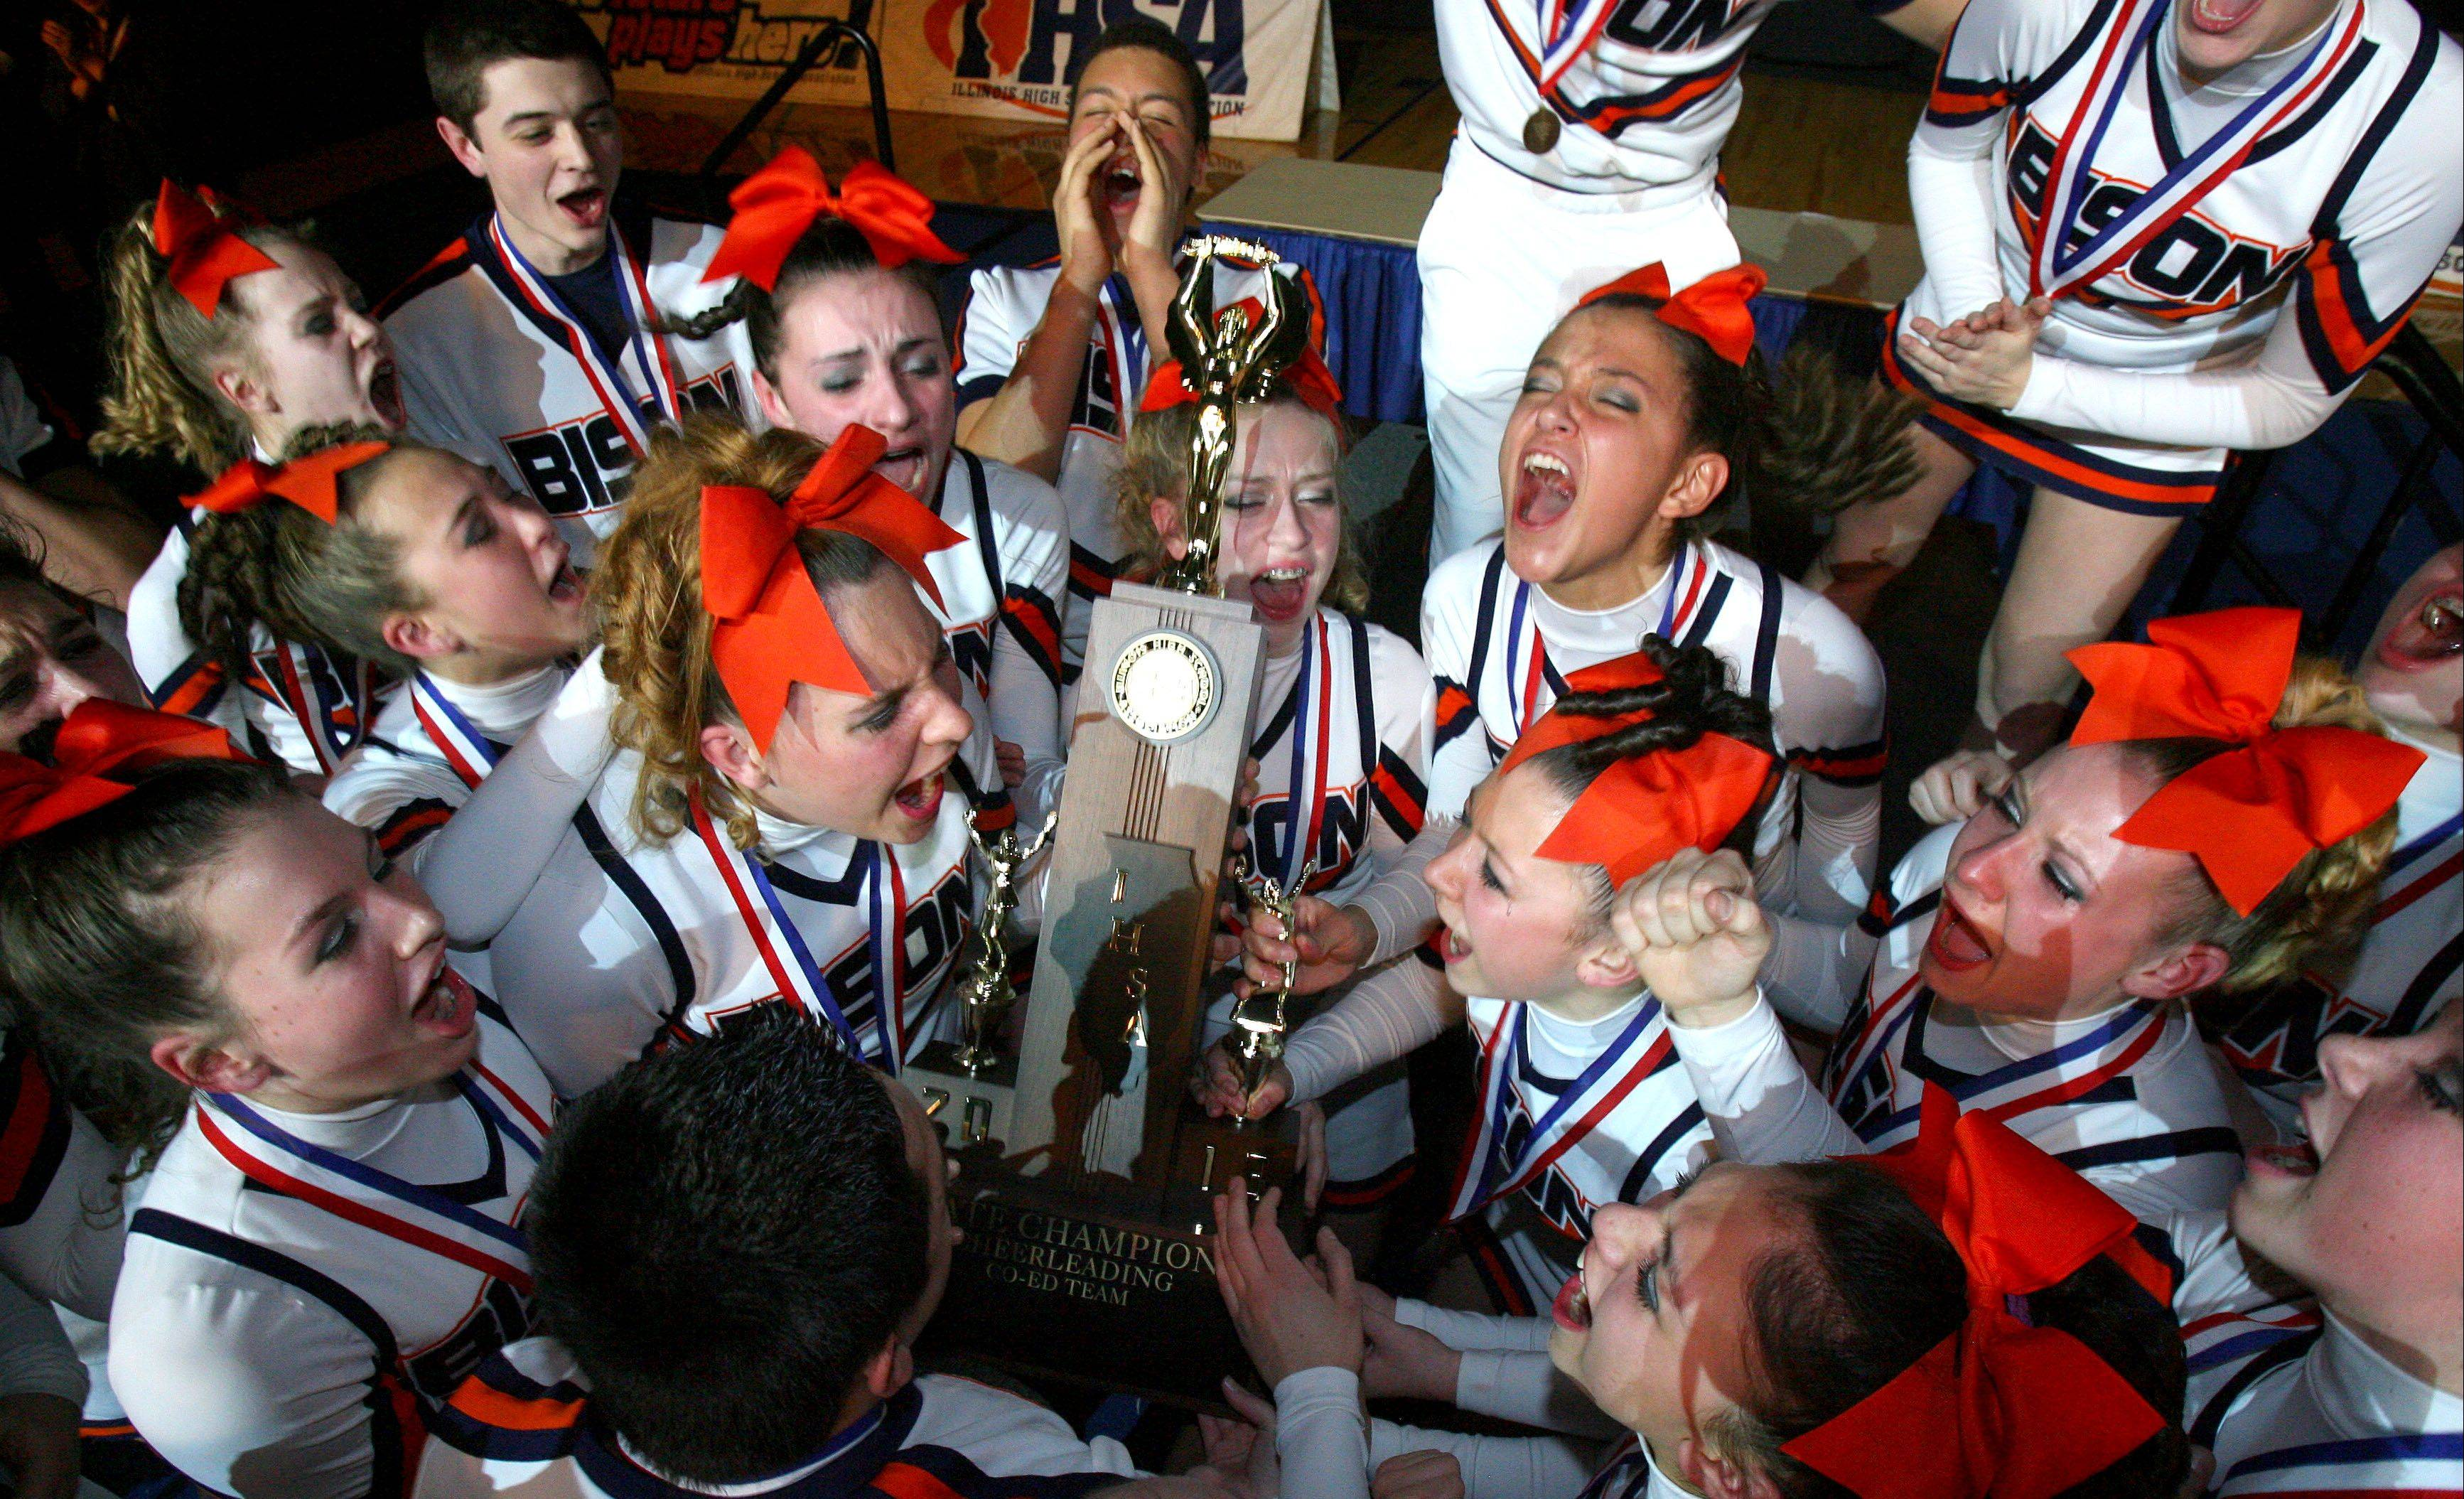 Buffalo Grove High School's large coed team celebrate after winning first place in the IHSA Competitive Cheerleading finals on Saturday at the U.S. Cellular Coliseum in Bloomington.